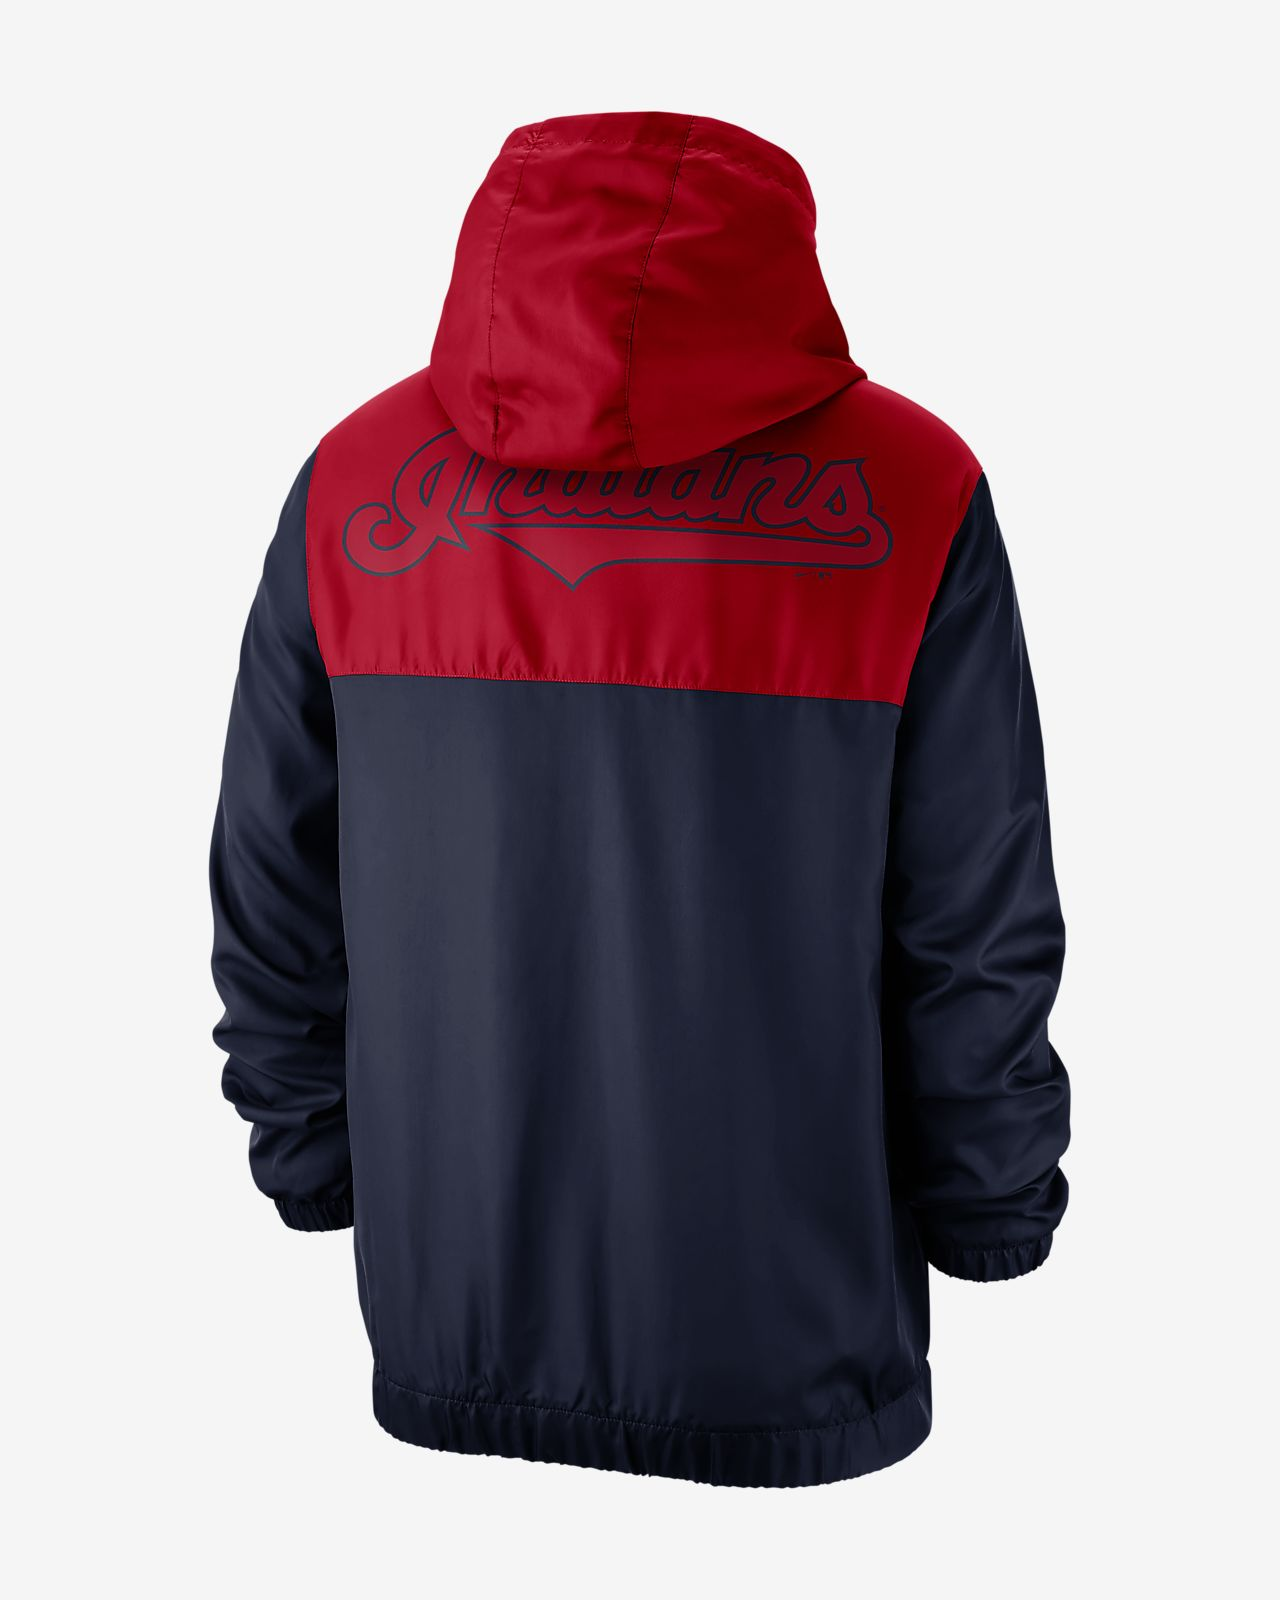 Nike Anorak (MLB Indians) Men's Jacket